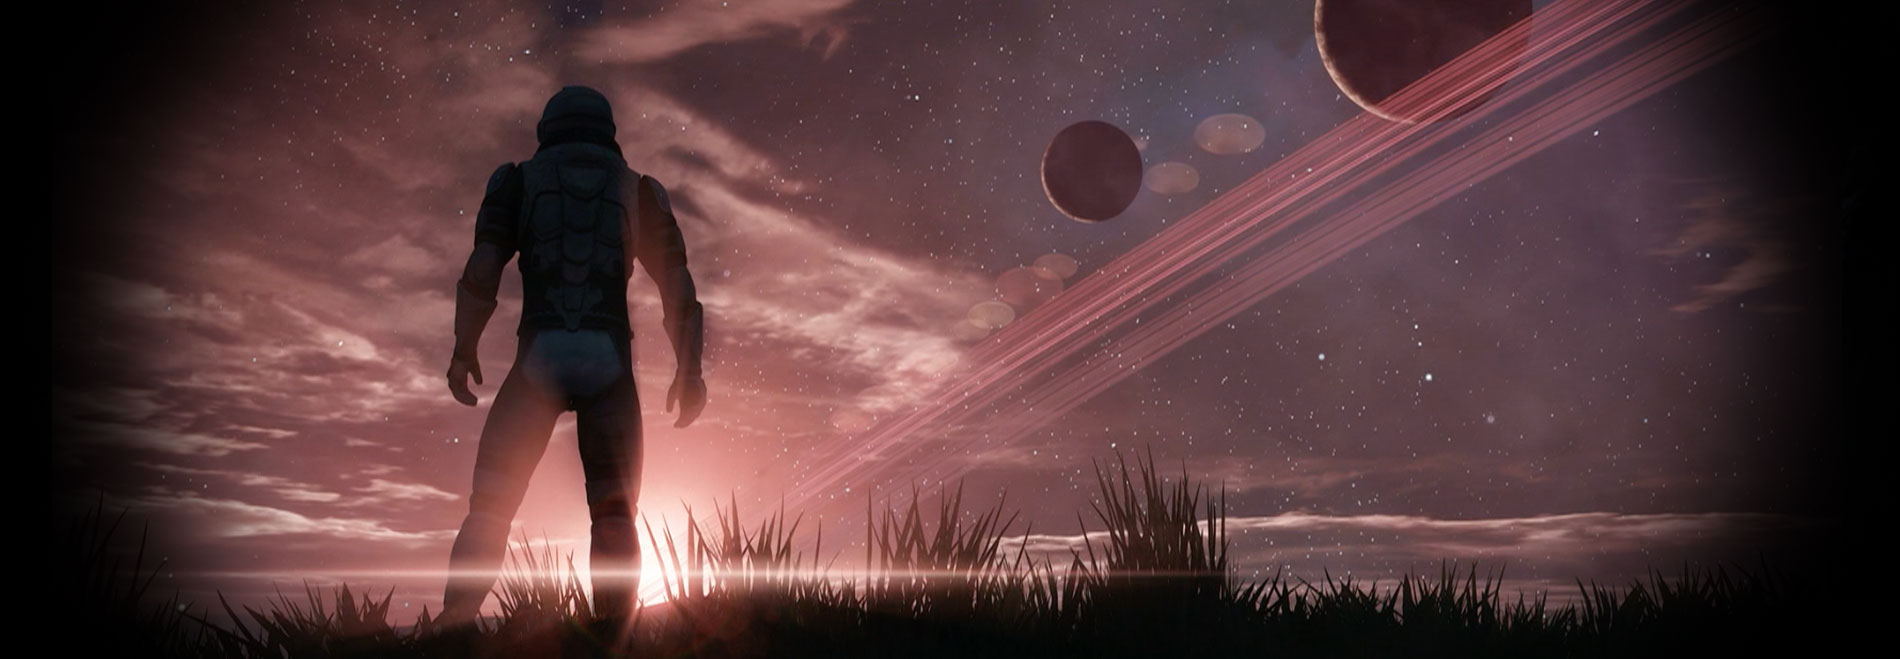 https://video-images.vice.com/uploads/1477603248823-star_citizen_wide.jpg